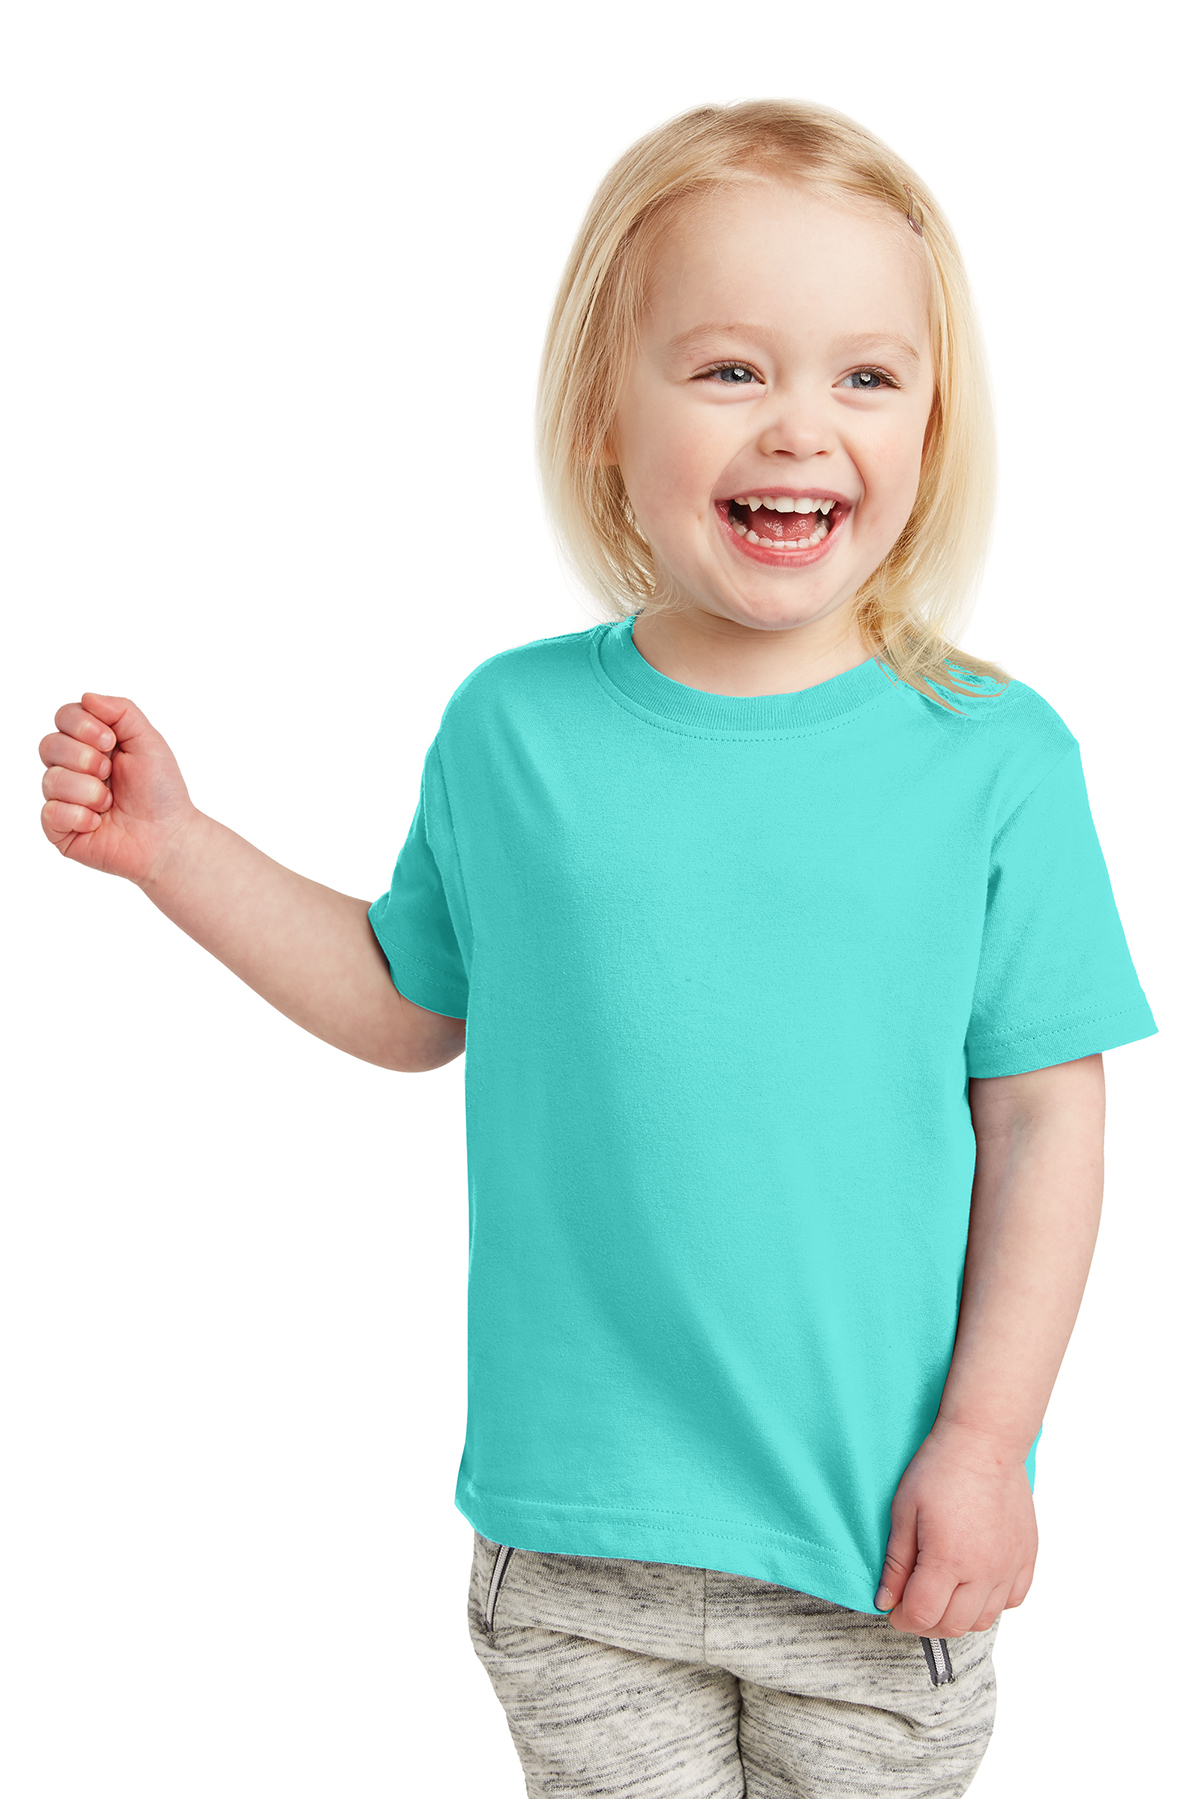 69c7550ac Rabbit Skins™ Toddler Fine Jersey Tee | Infant & Toddler | Youth ...